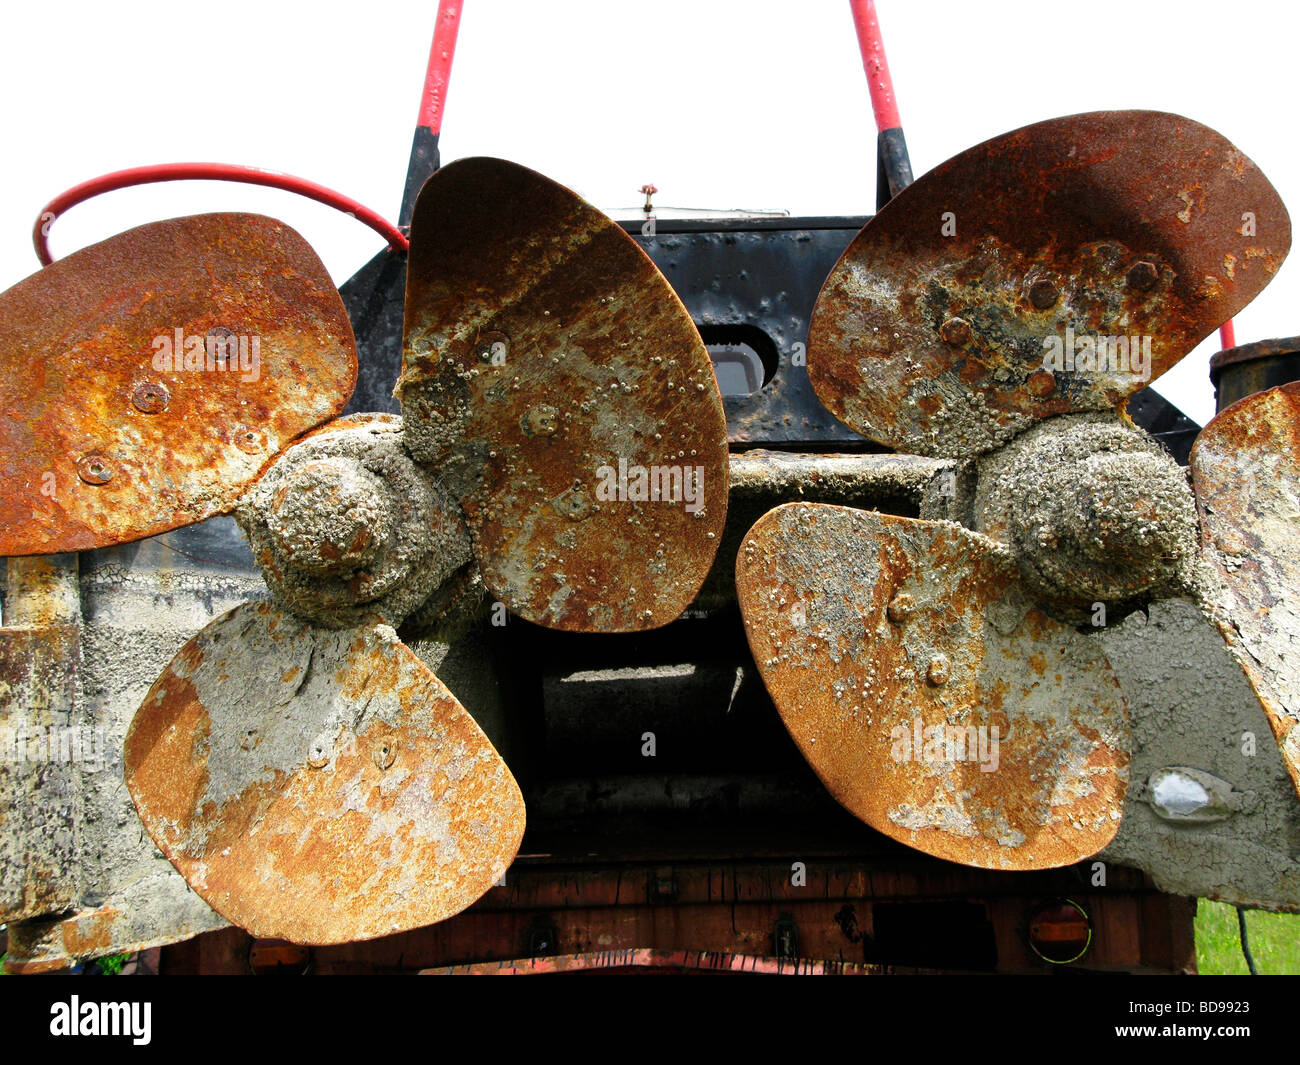 Rusty Old Boat Propellers Amrum Germany - Stock Image